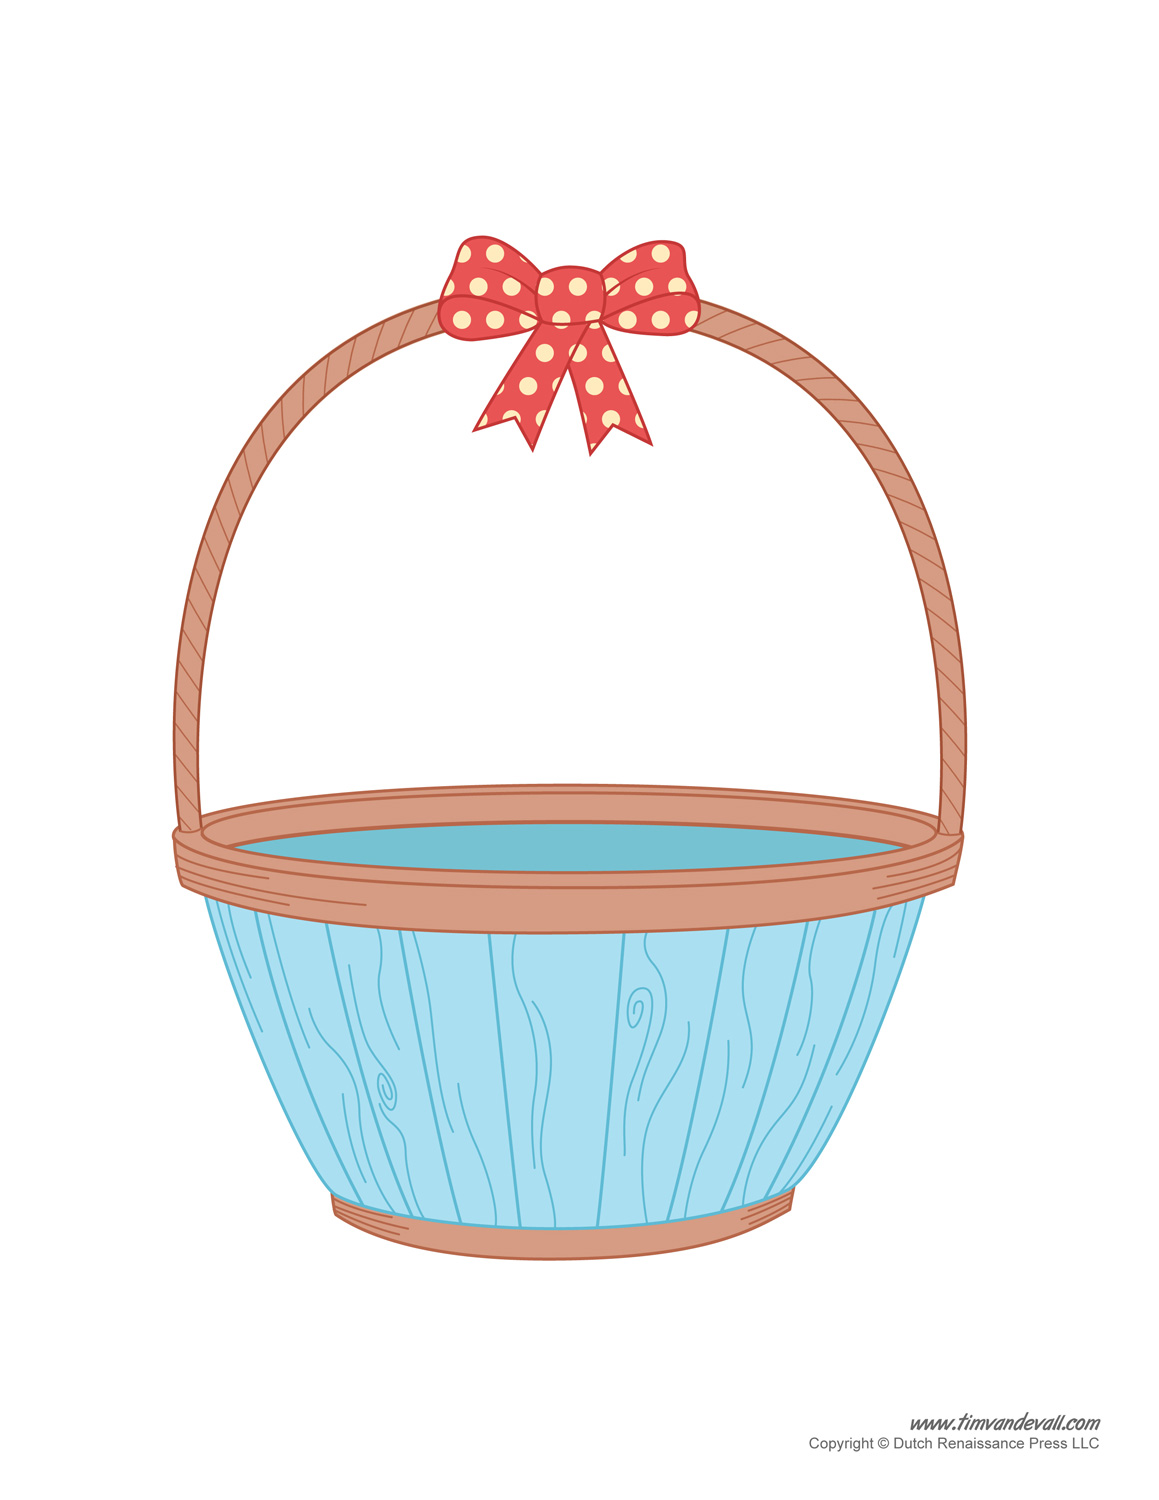 Easter basket straw clipart jpg freeuse library Images of Empty Easter Baskets - Wedding Goods jpg freeuse library